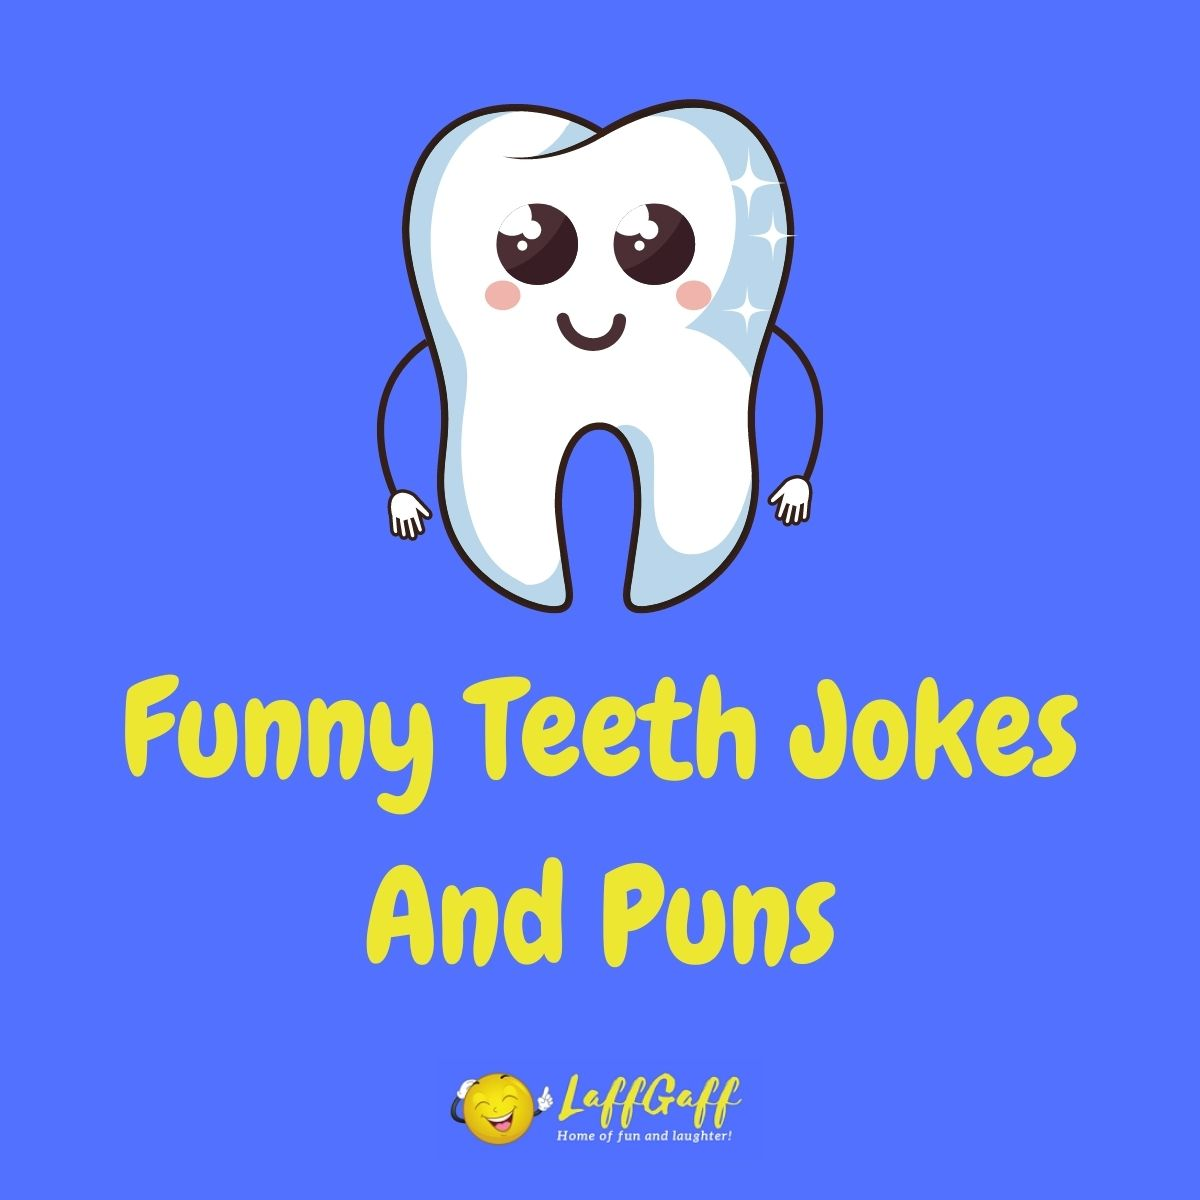 Featured image for a page of funny teeth jokes and puns.